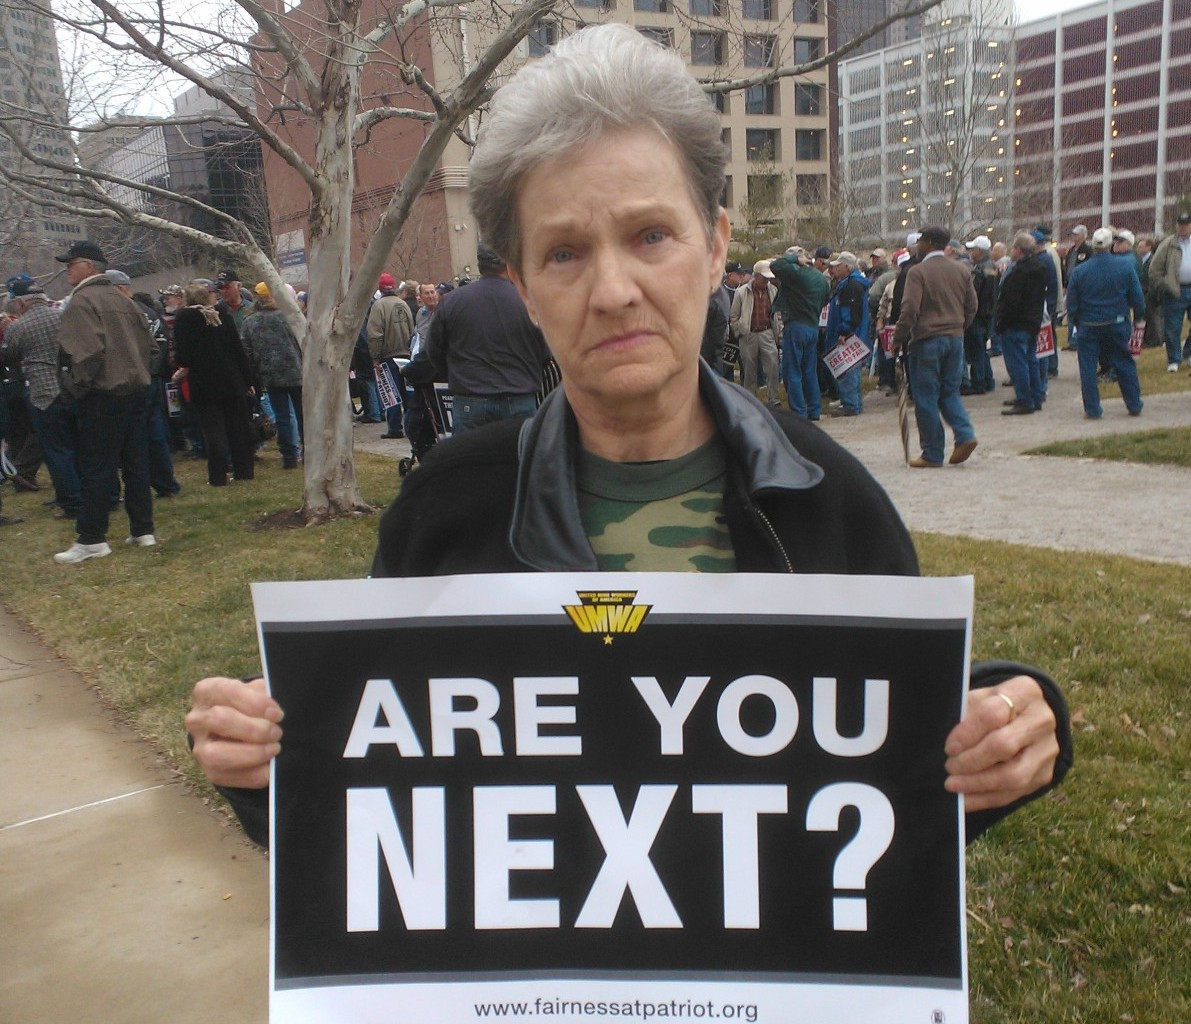 Shirley Inman of Madison, WV protests in St. Louis, fearful her cancer will return and she'll have no promised health care coverage to pay for it